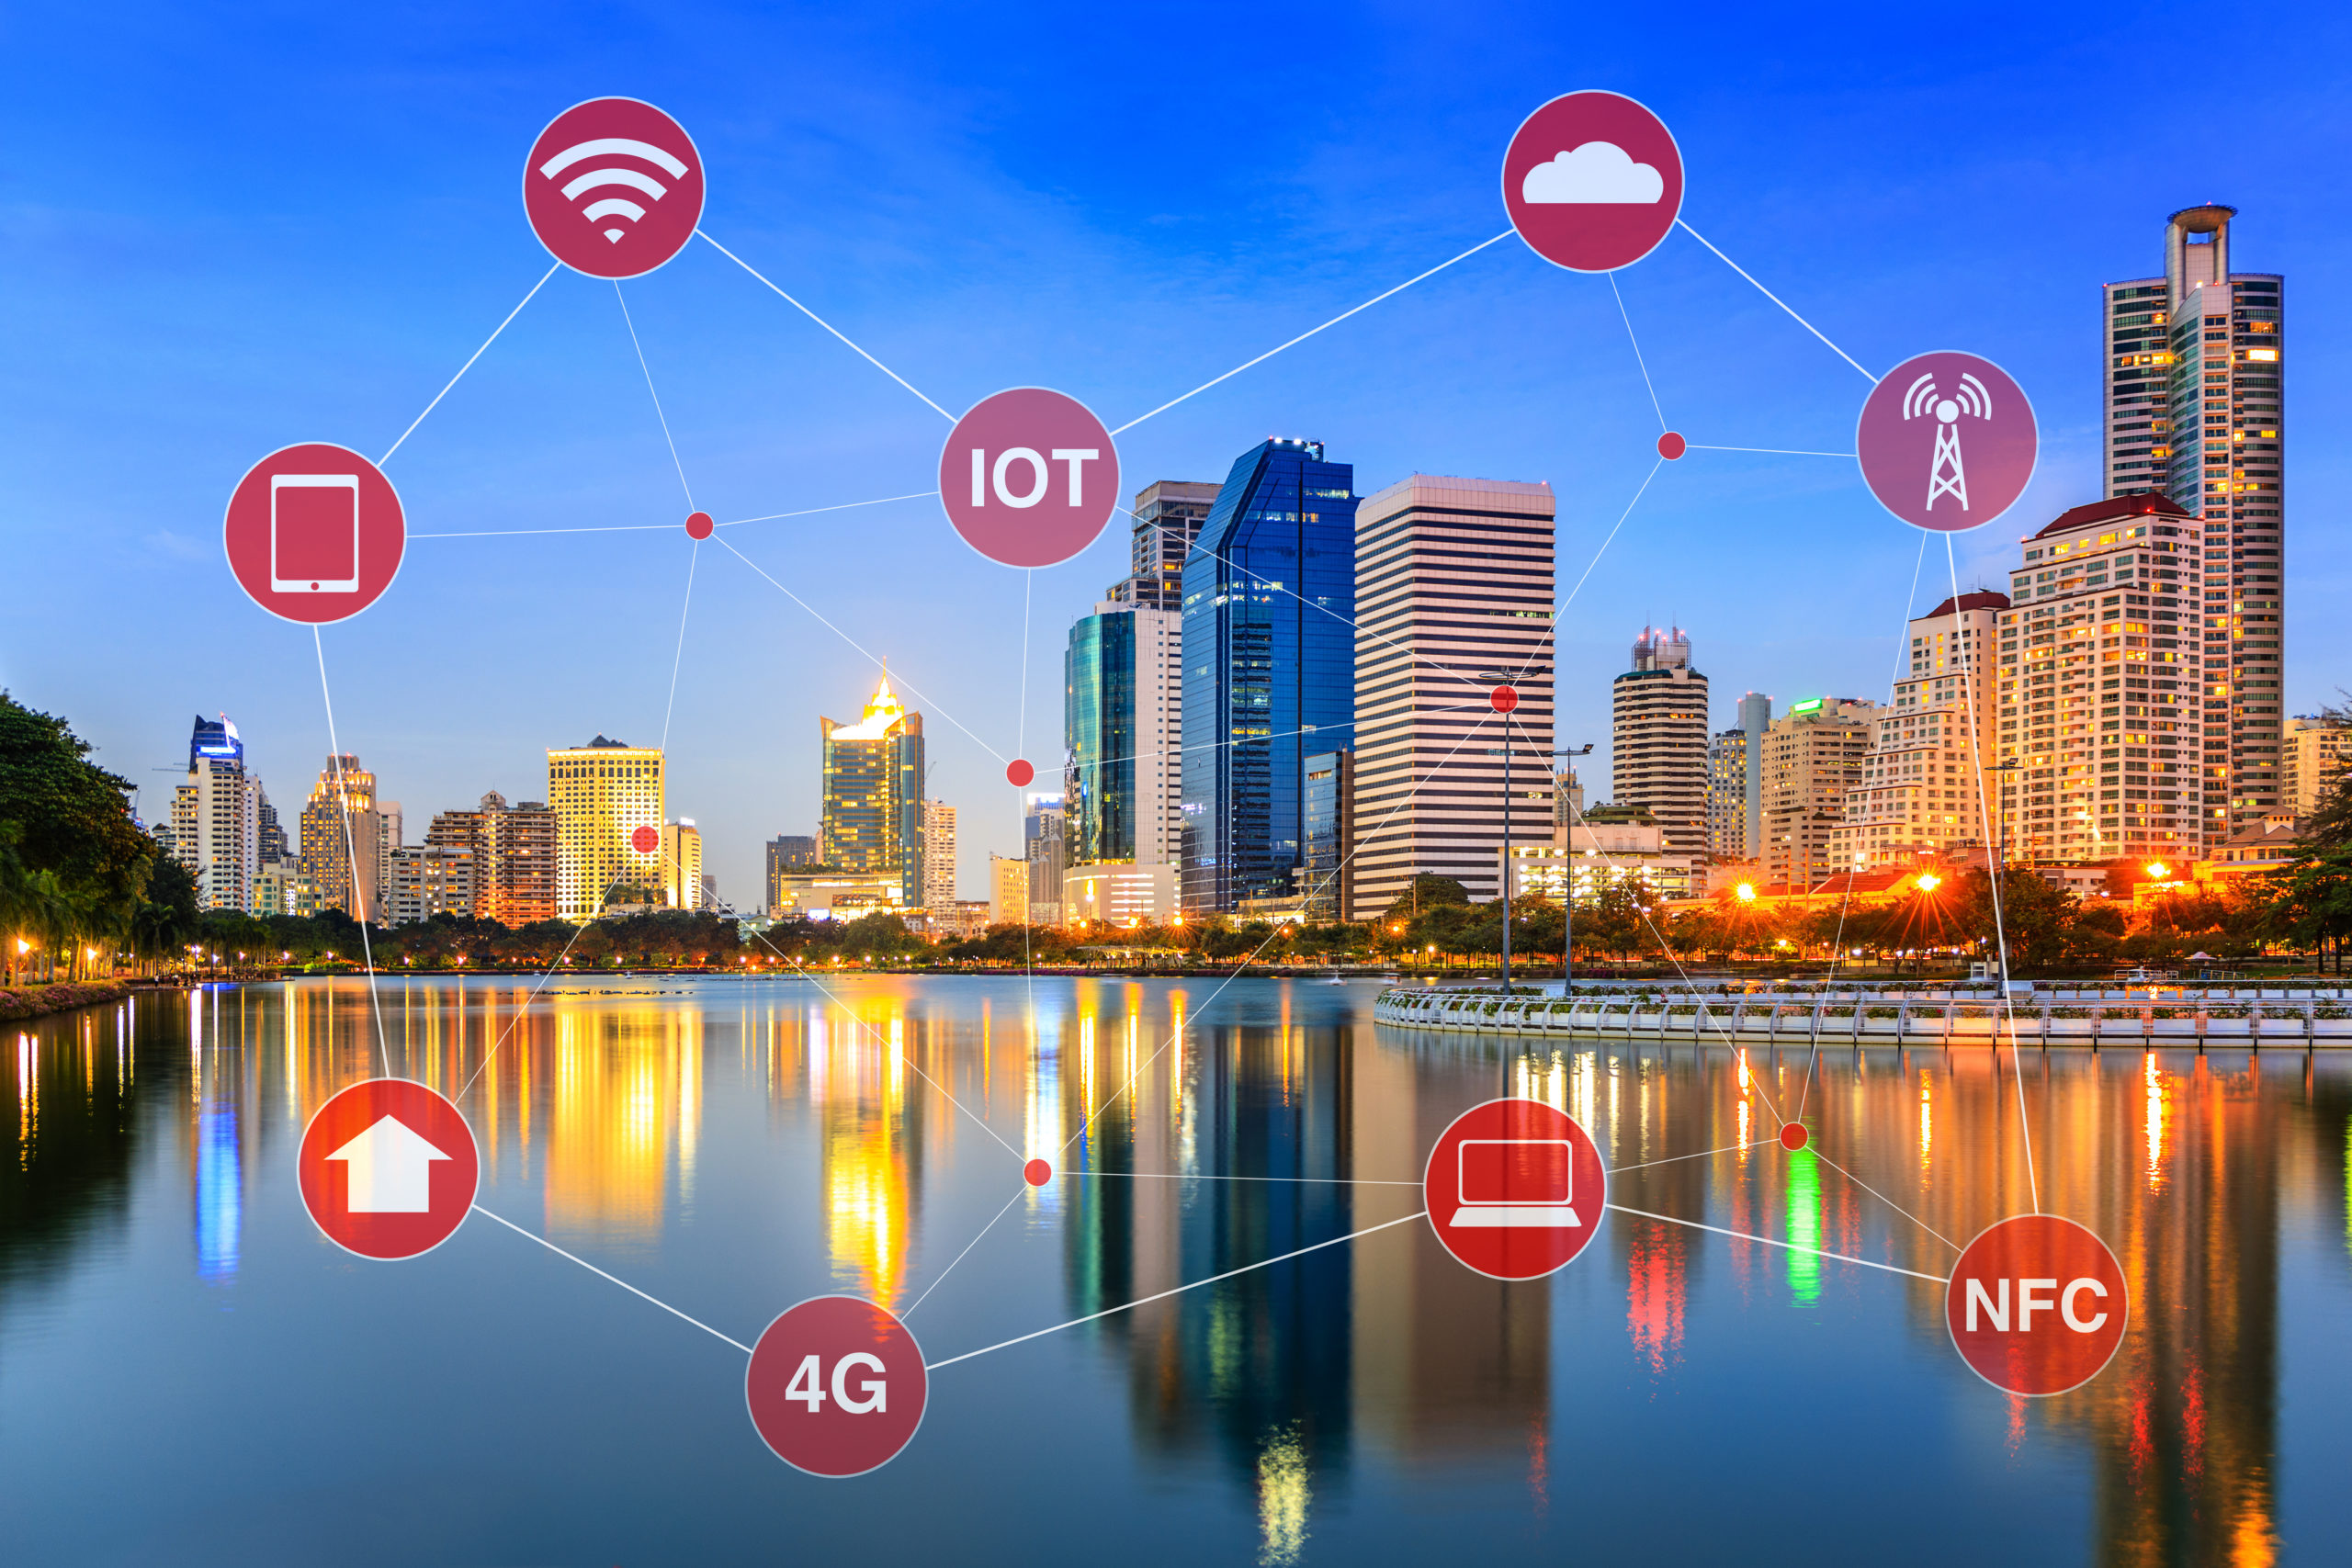 Smart City illustrated by Networking and Internet of Things or IOT and wireless signals